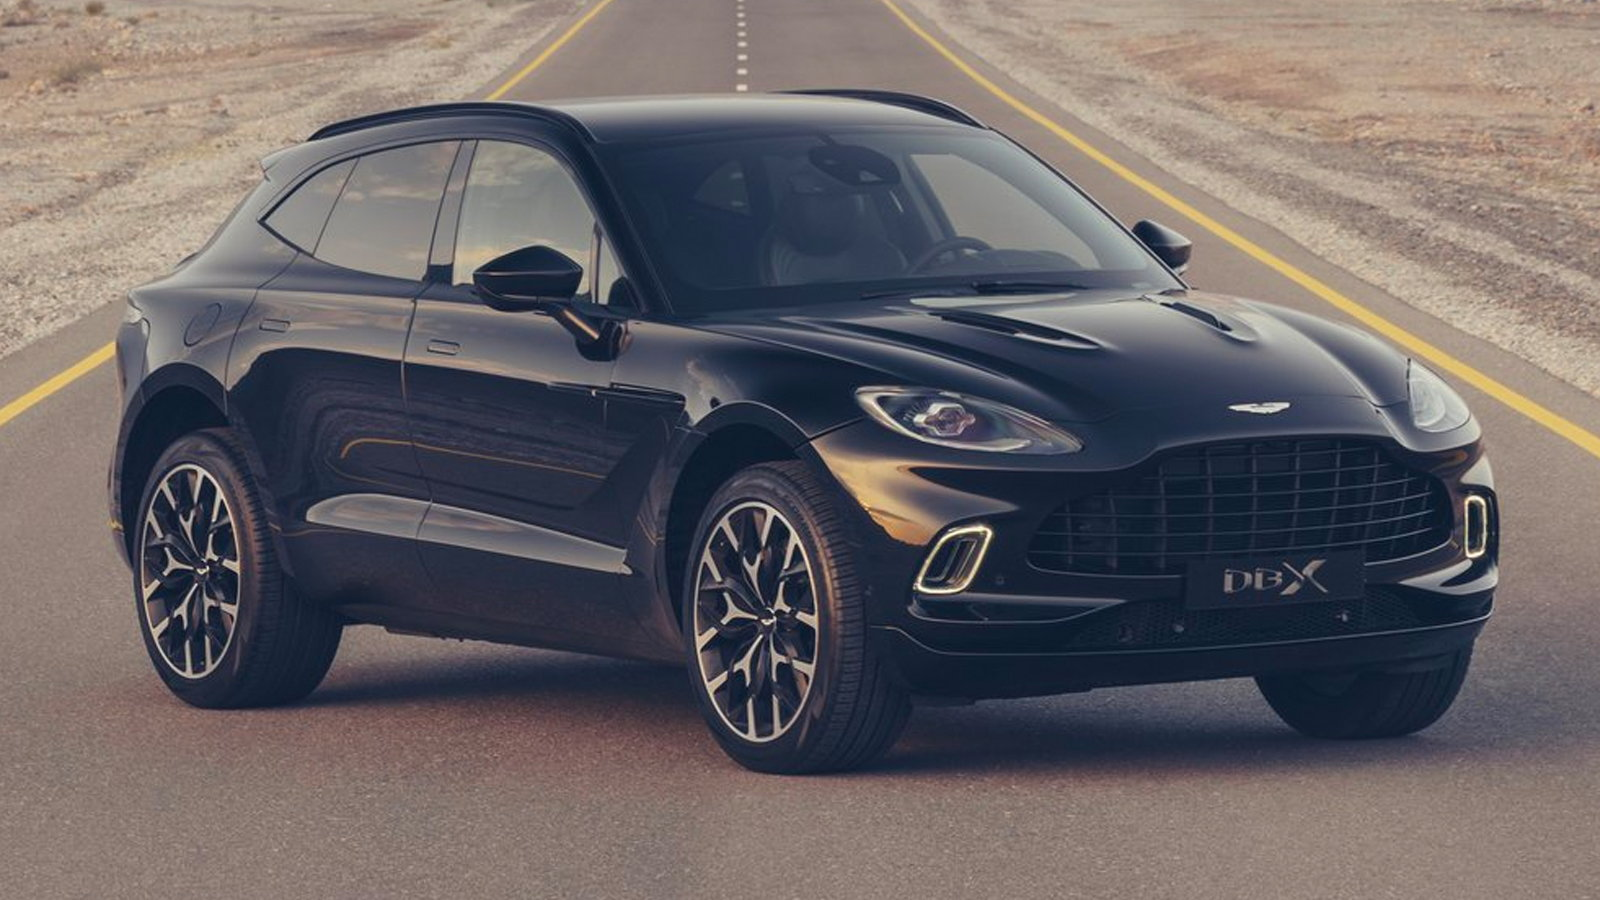 2021 Aston Martin Dbx Aims To Capture The Magic In Suv Form 6speedonline